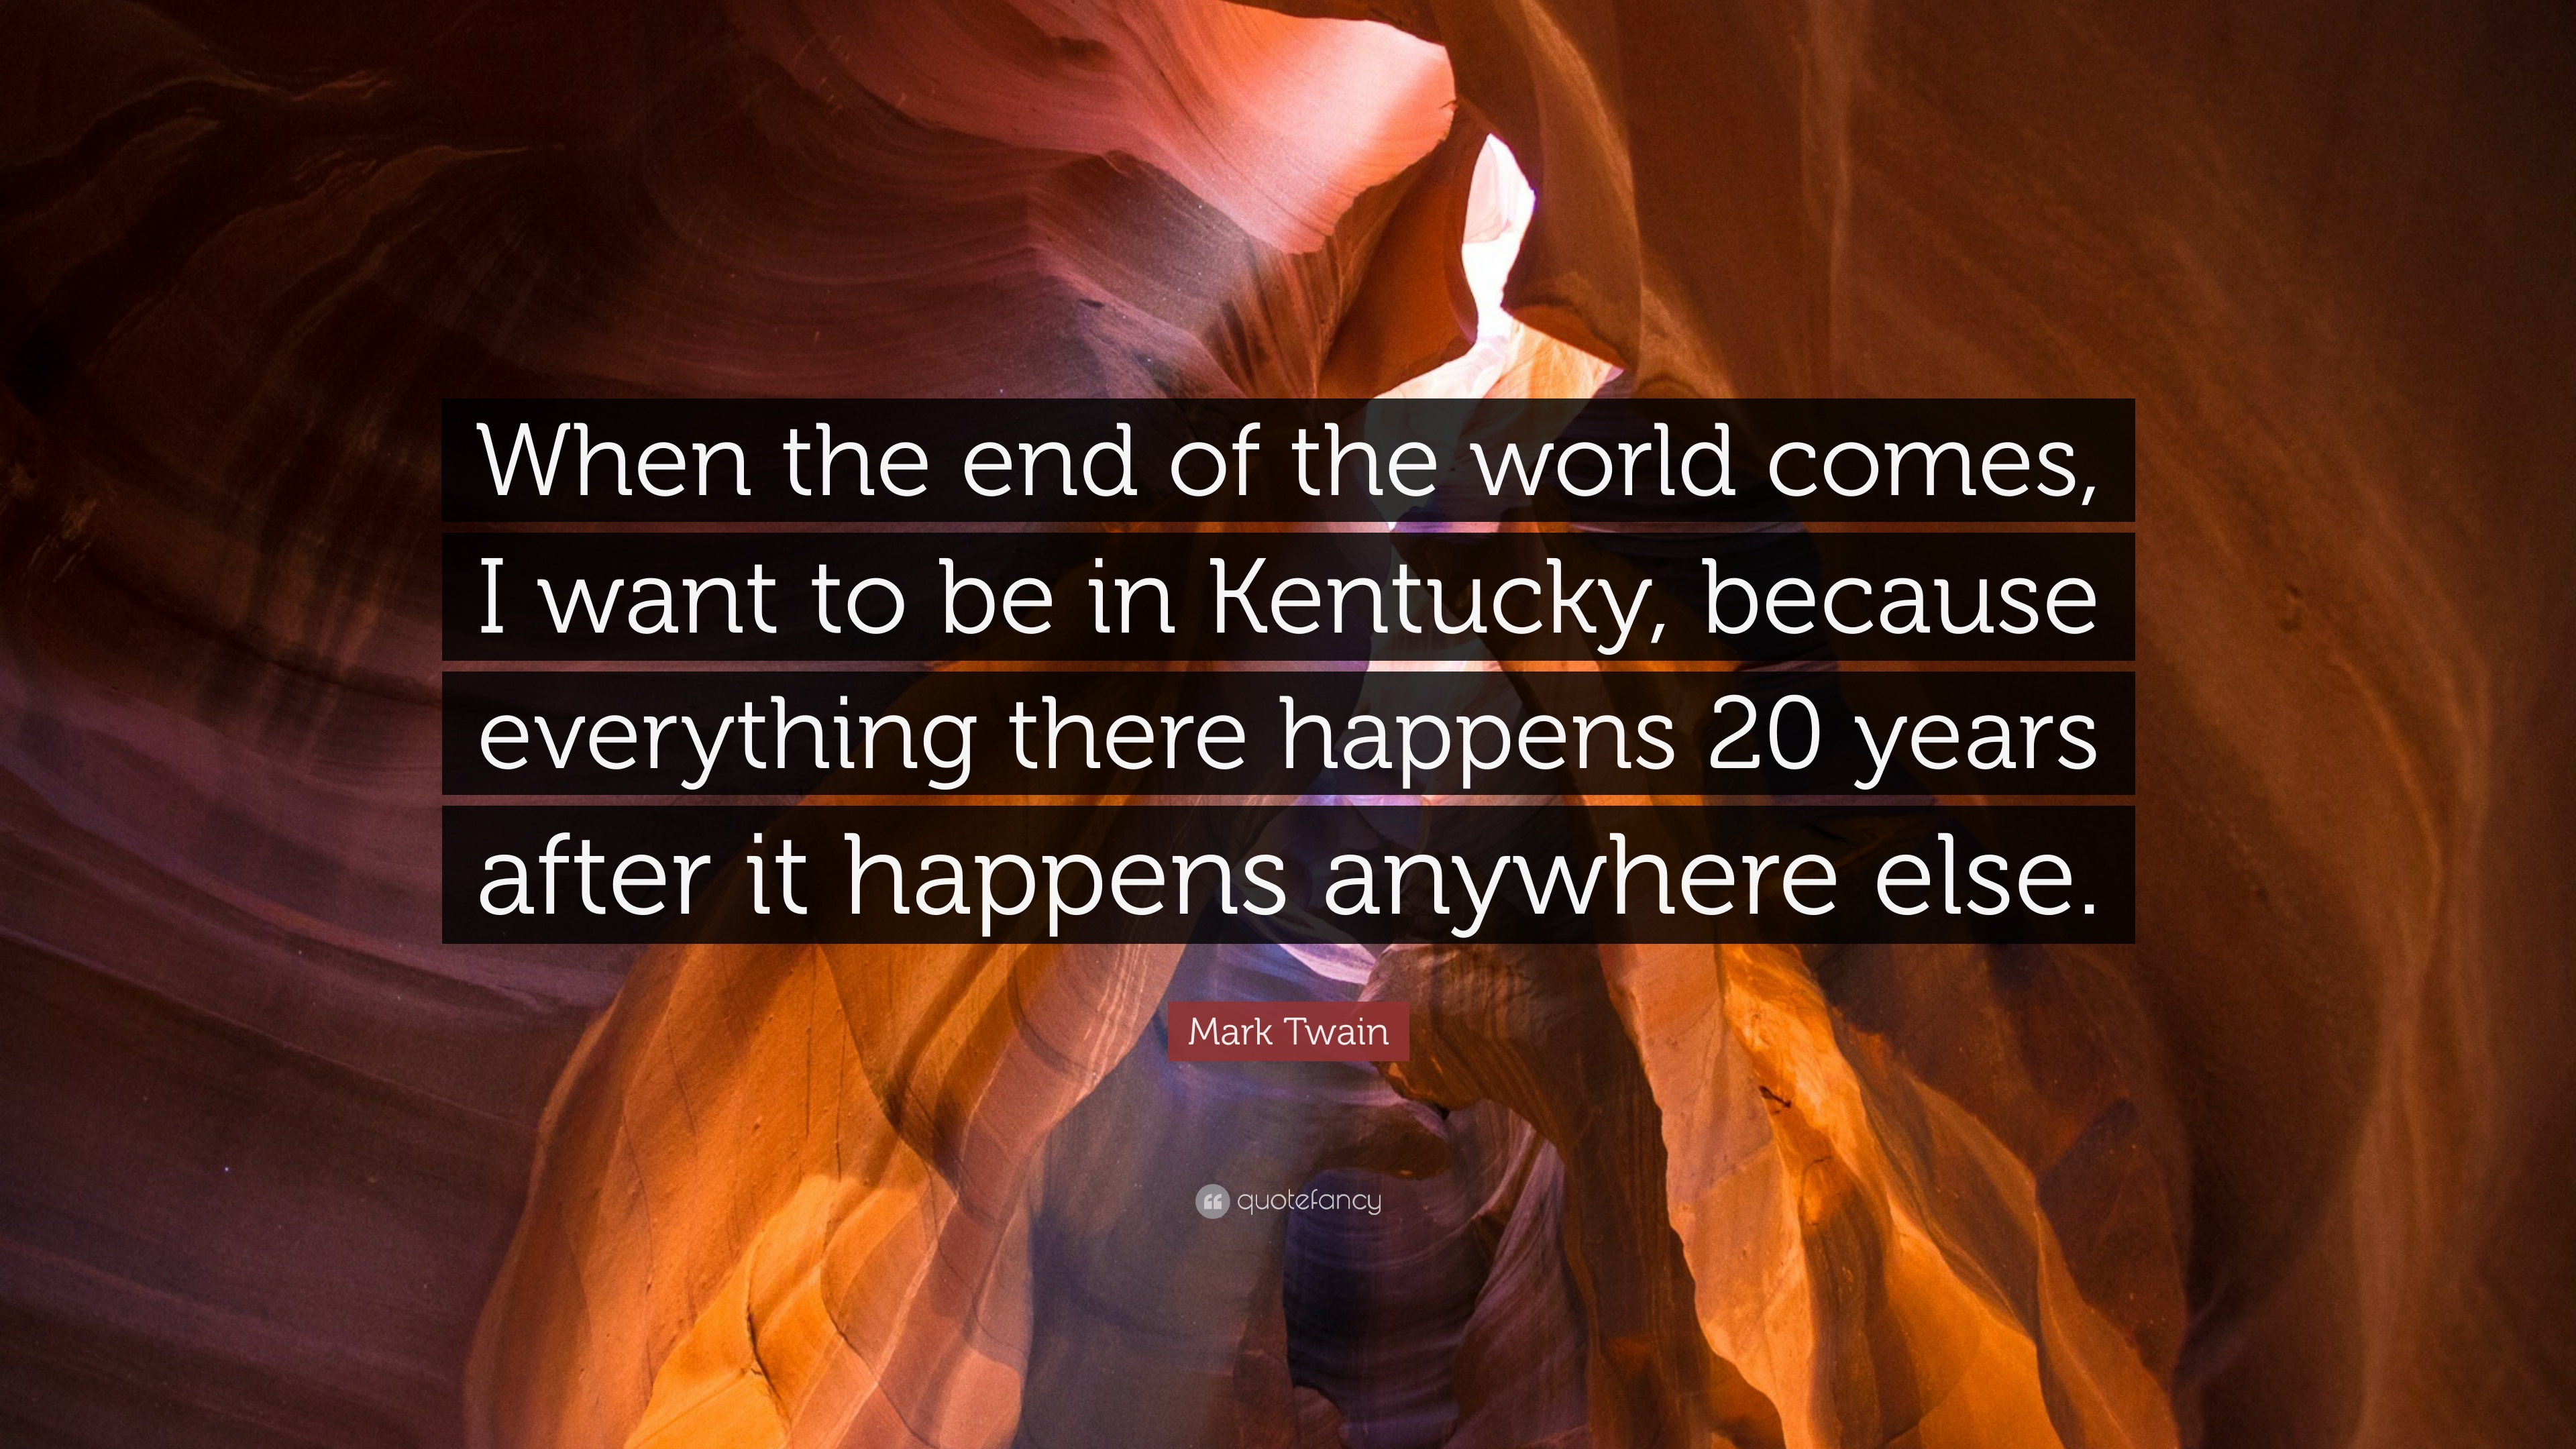 Mark Twain Quote When The End Of The World Comes I Want To Be In